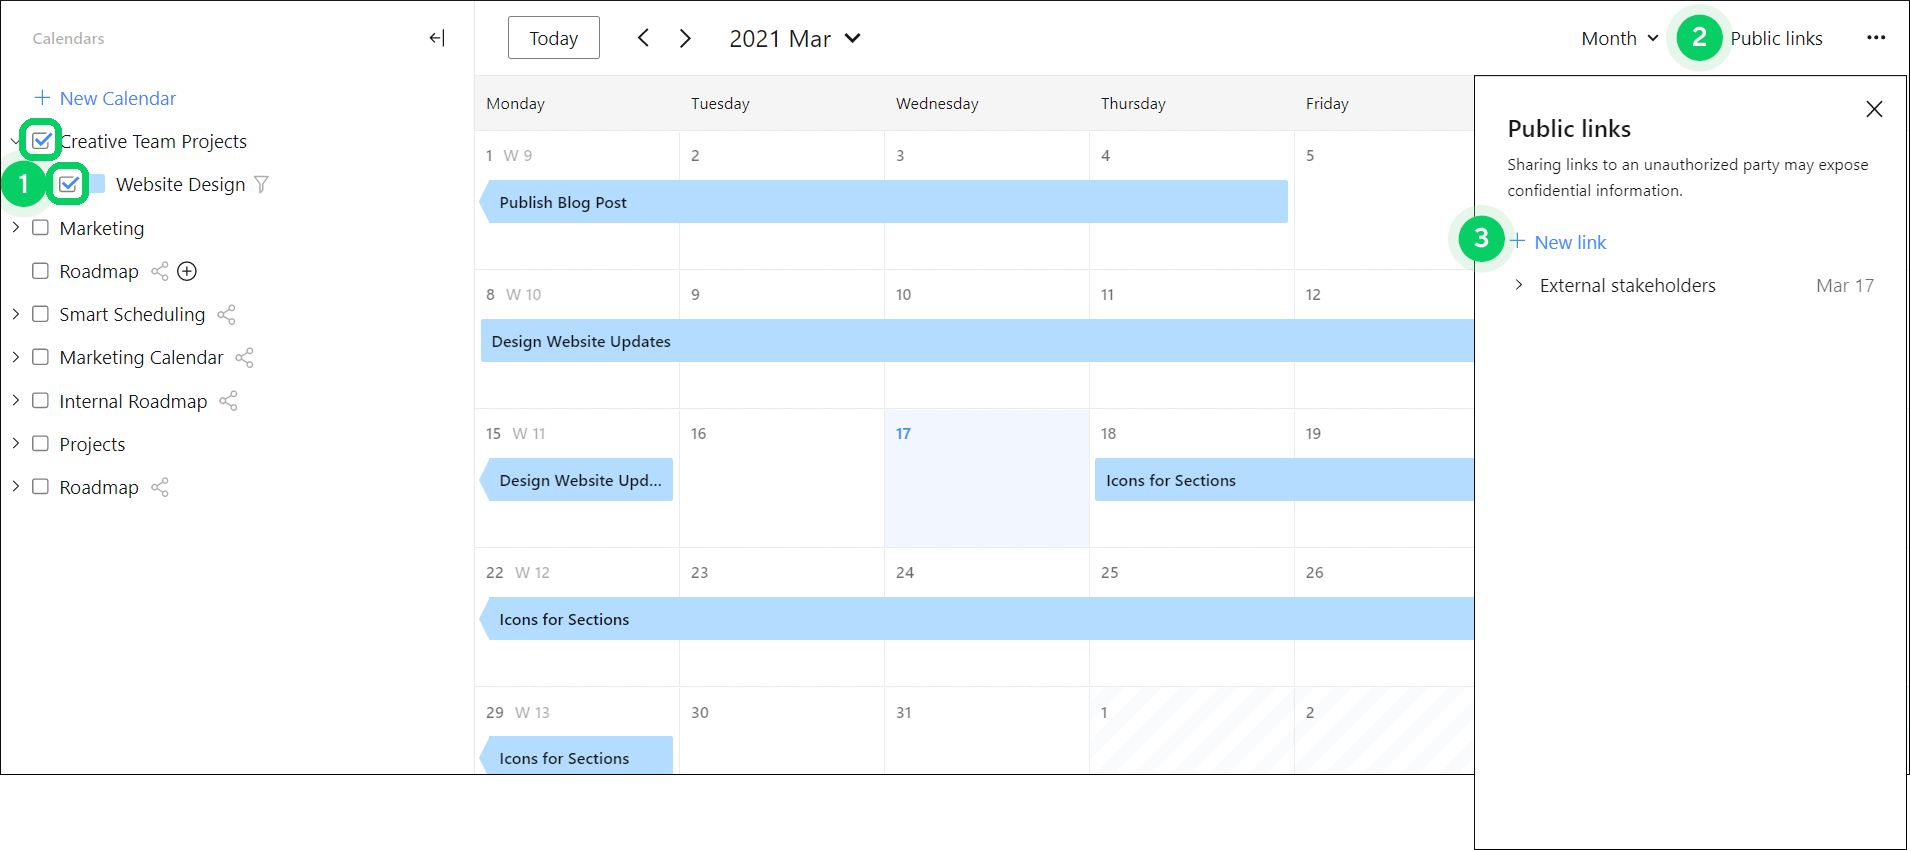 Calendars_-_Add_public_links.png